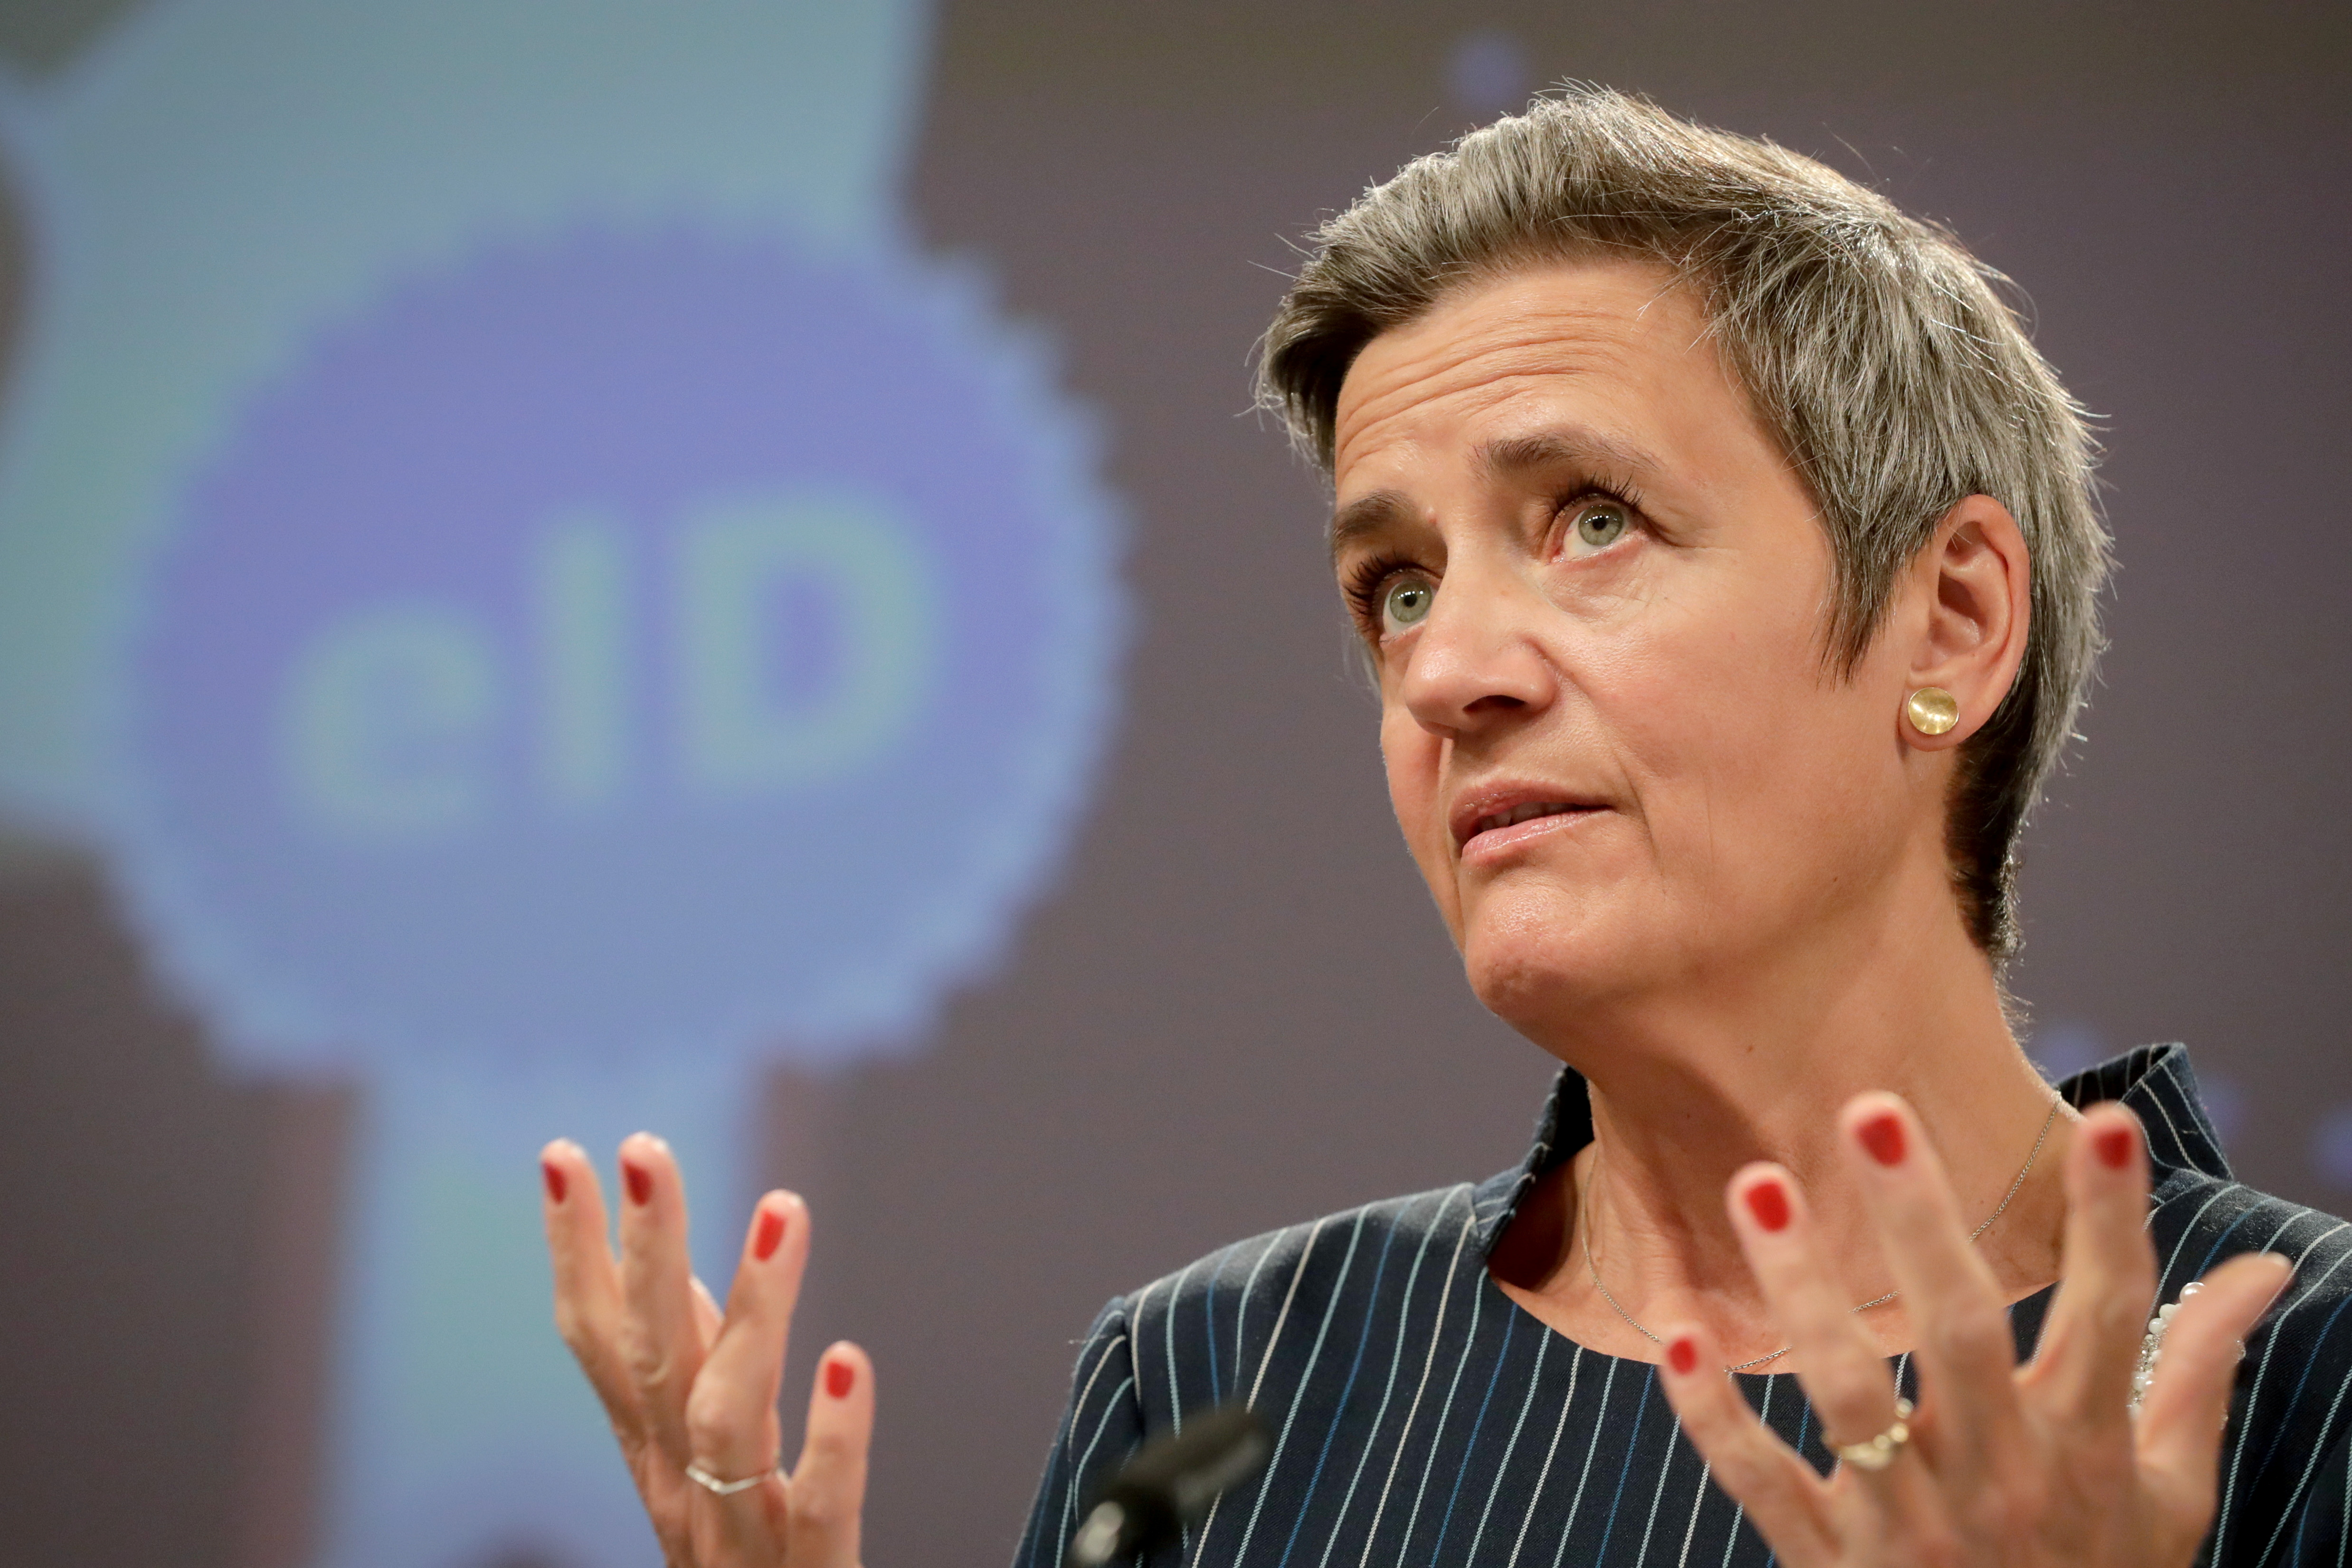 Executive Vice-President of the European Commission for a Europe fit for the Digital Age (Competition) Margrethe Vestager  gives a press conference at the European Commission in Brussels, Belgium June 3, 2021. Stephanie Lecocq/Pool via REUTERS/File Photo